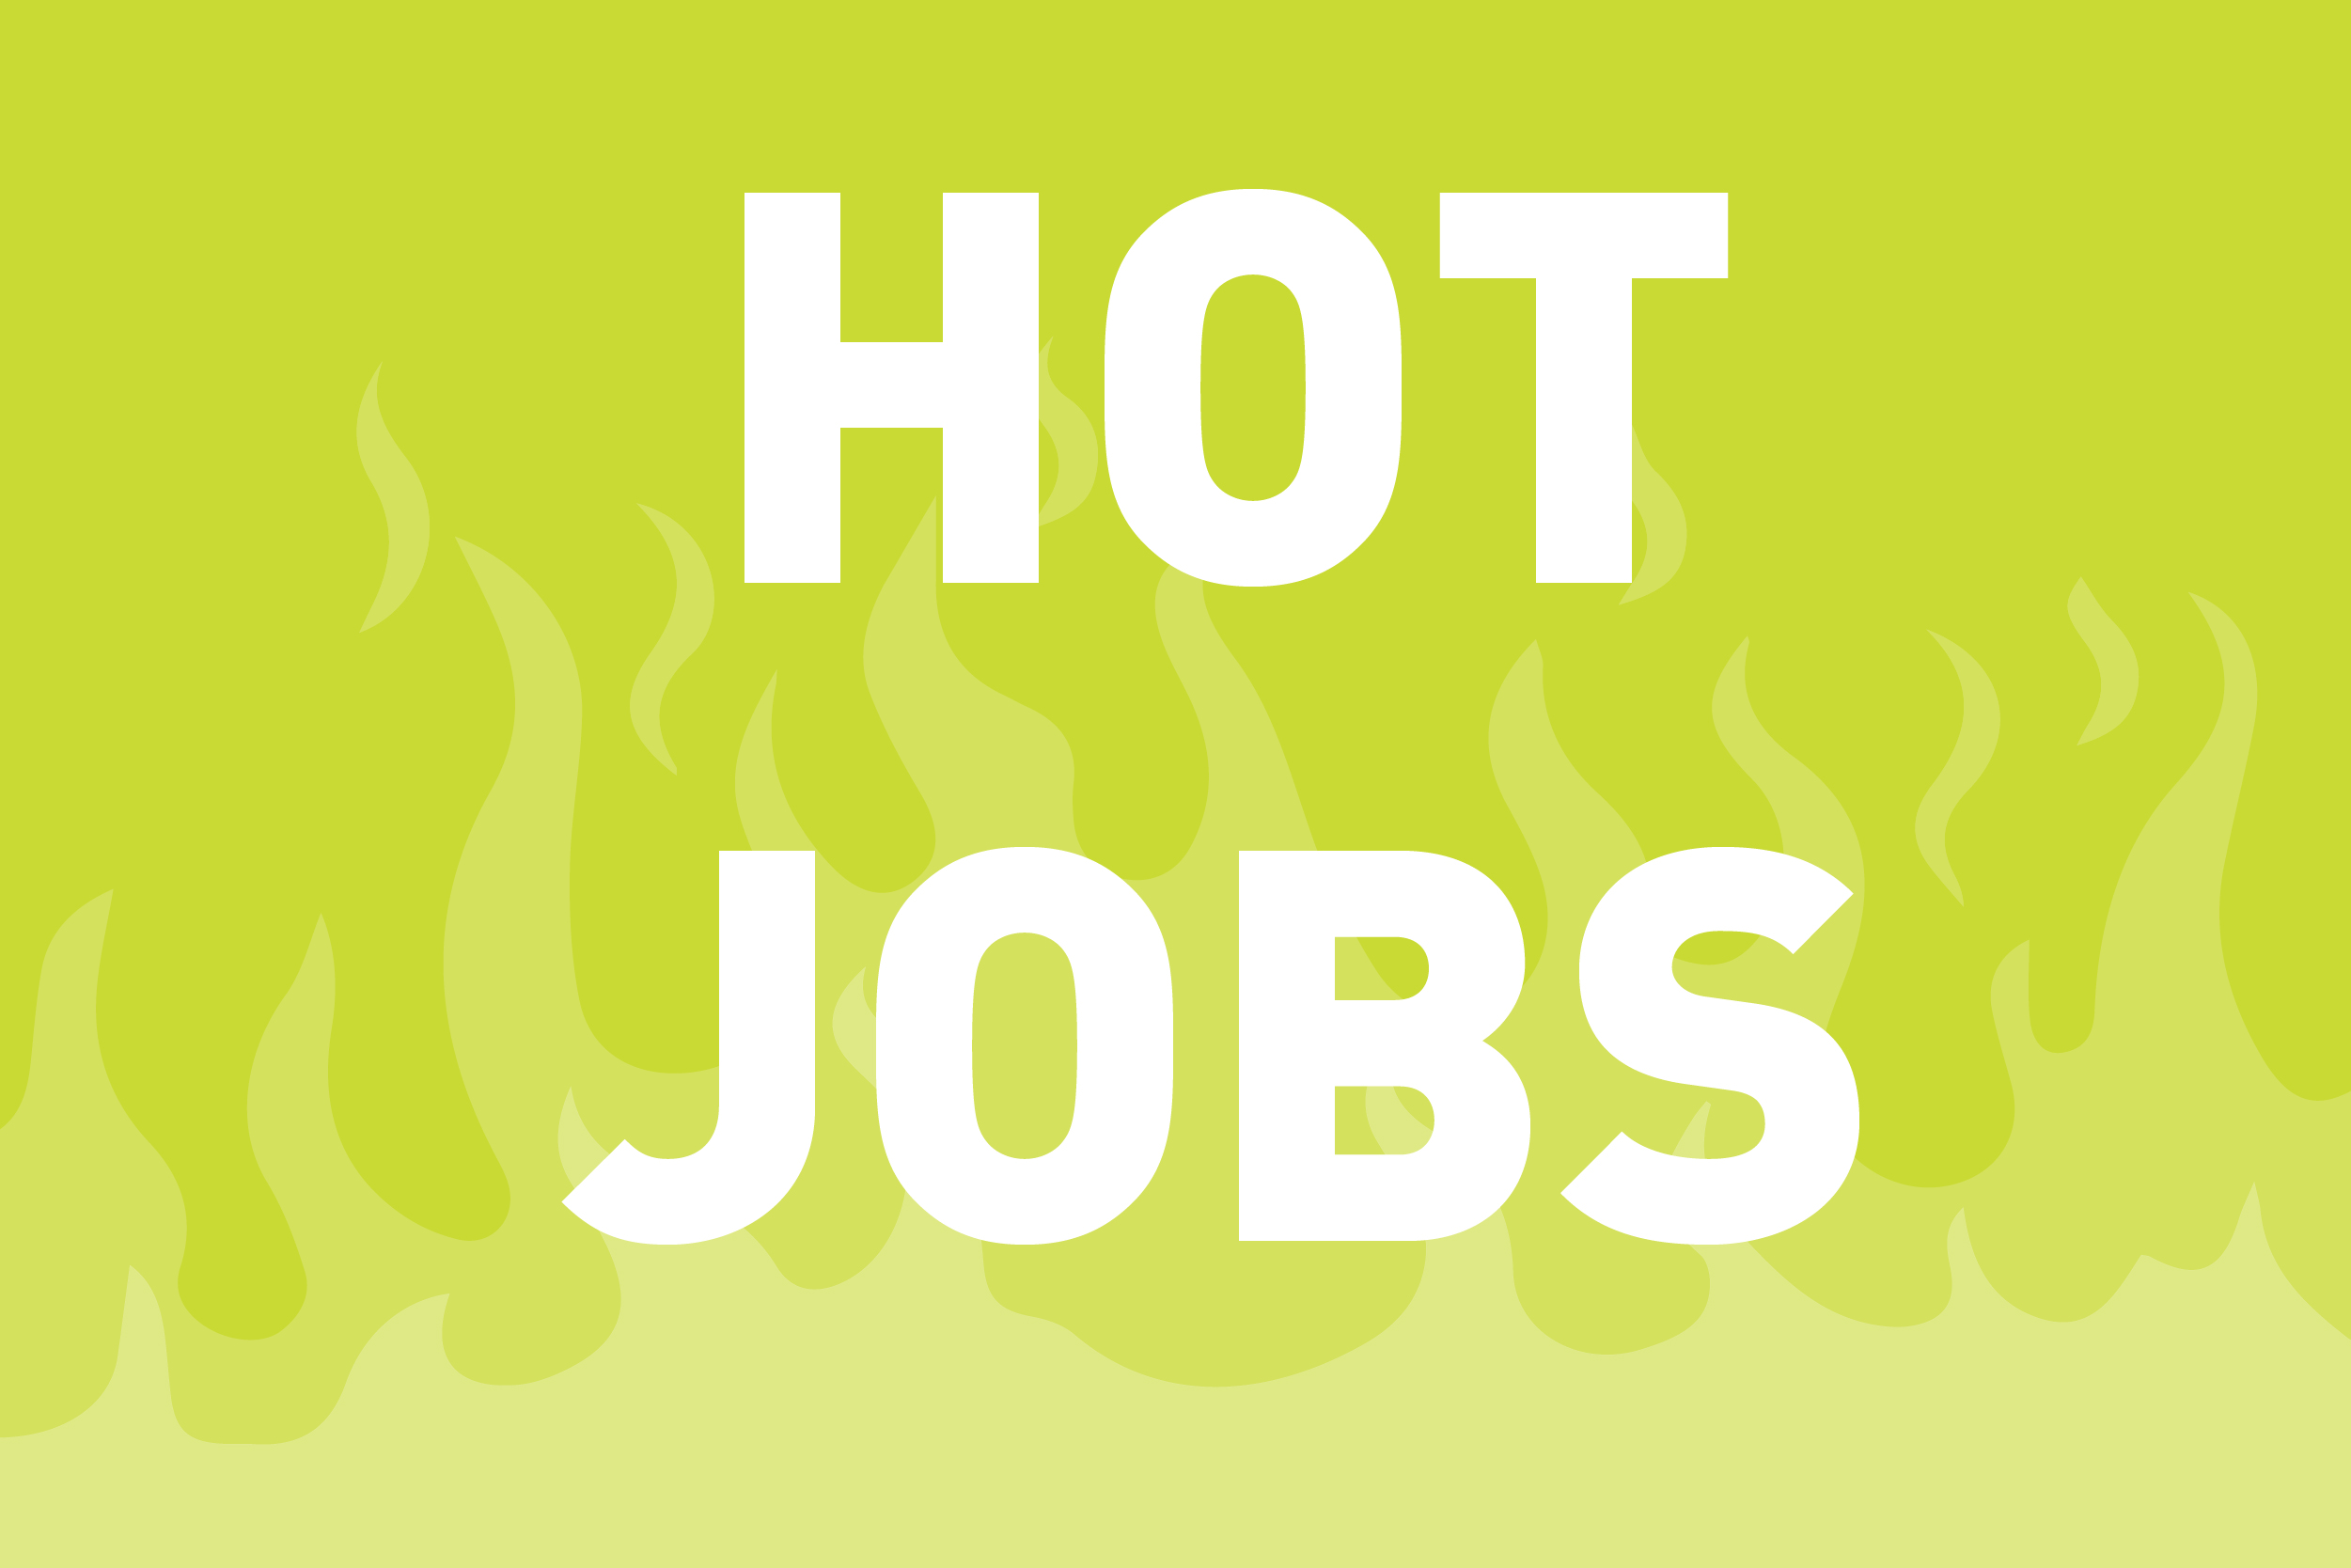 THIS WEEK'S HOT JOBS!